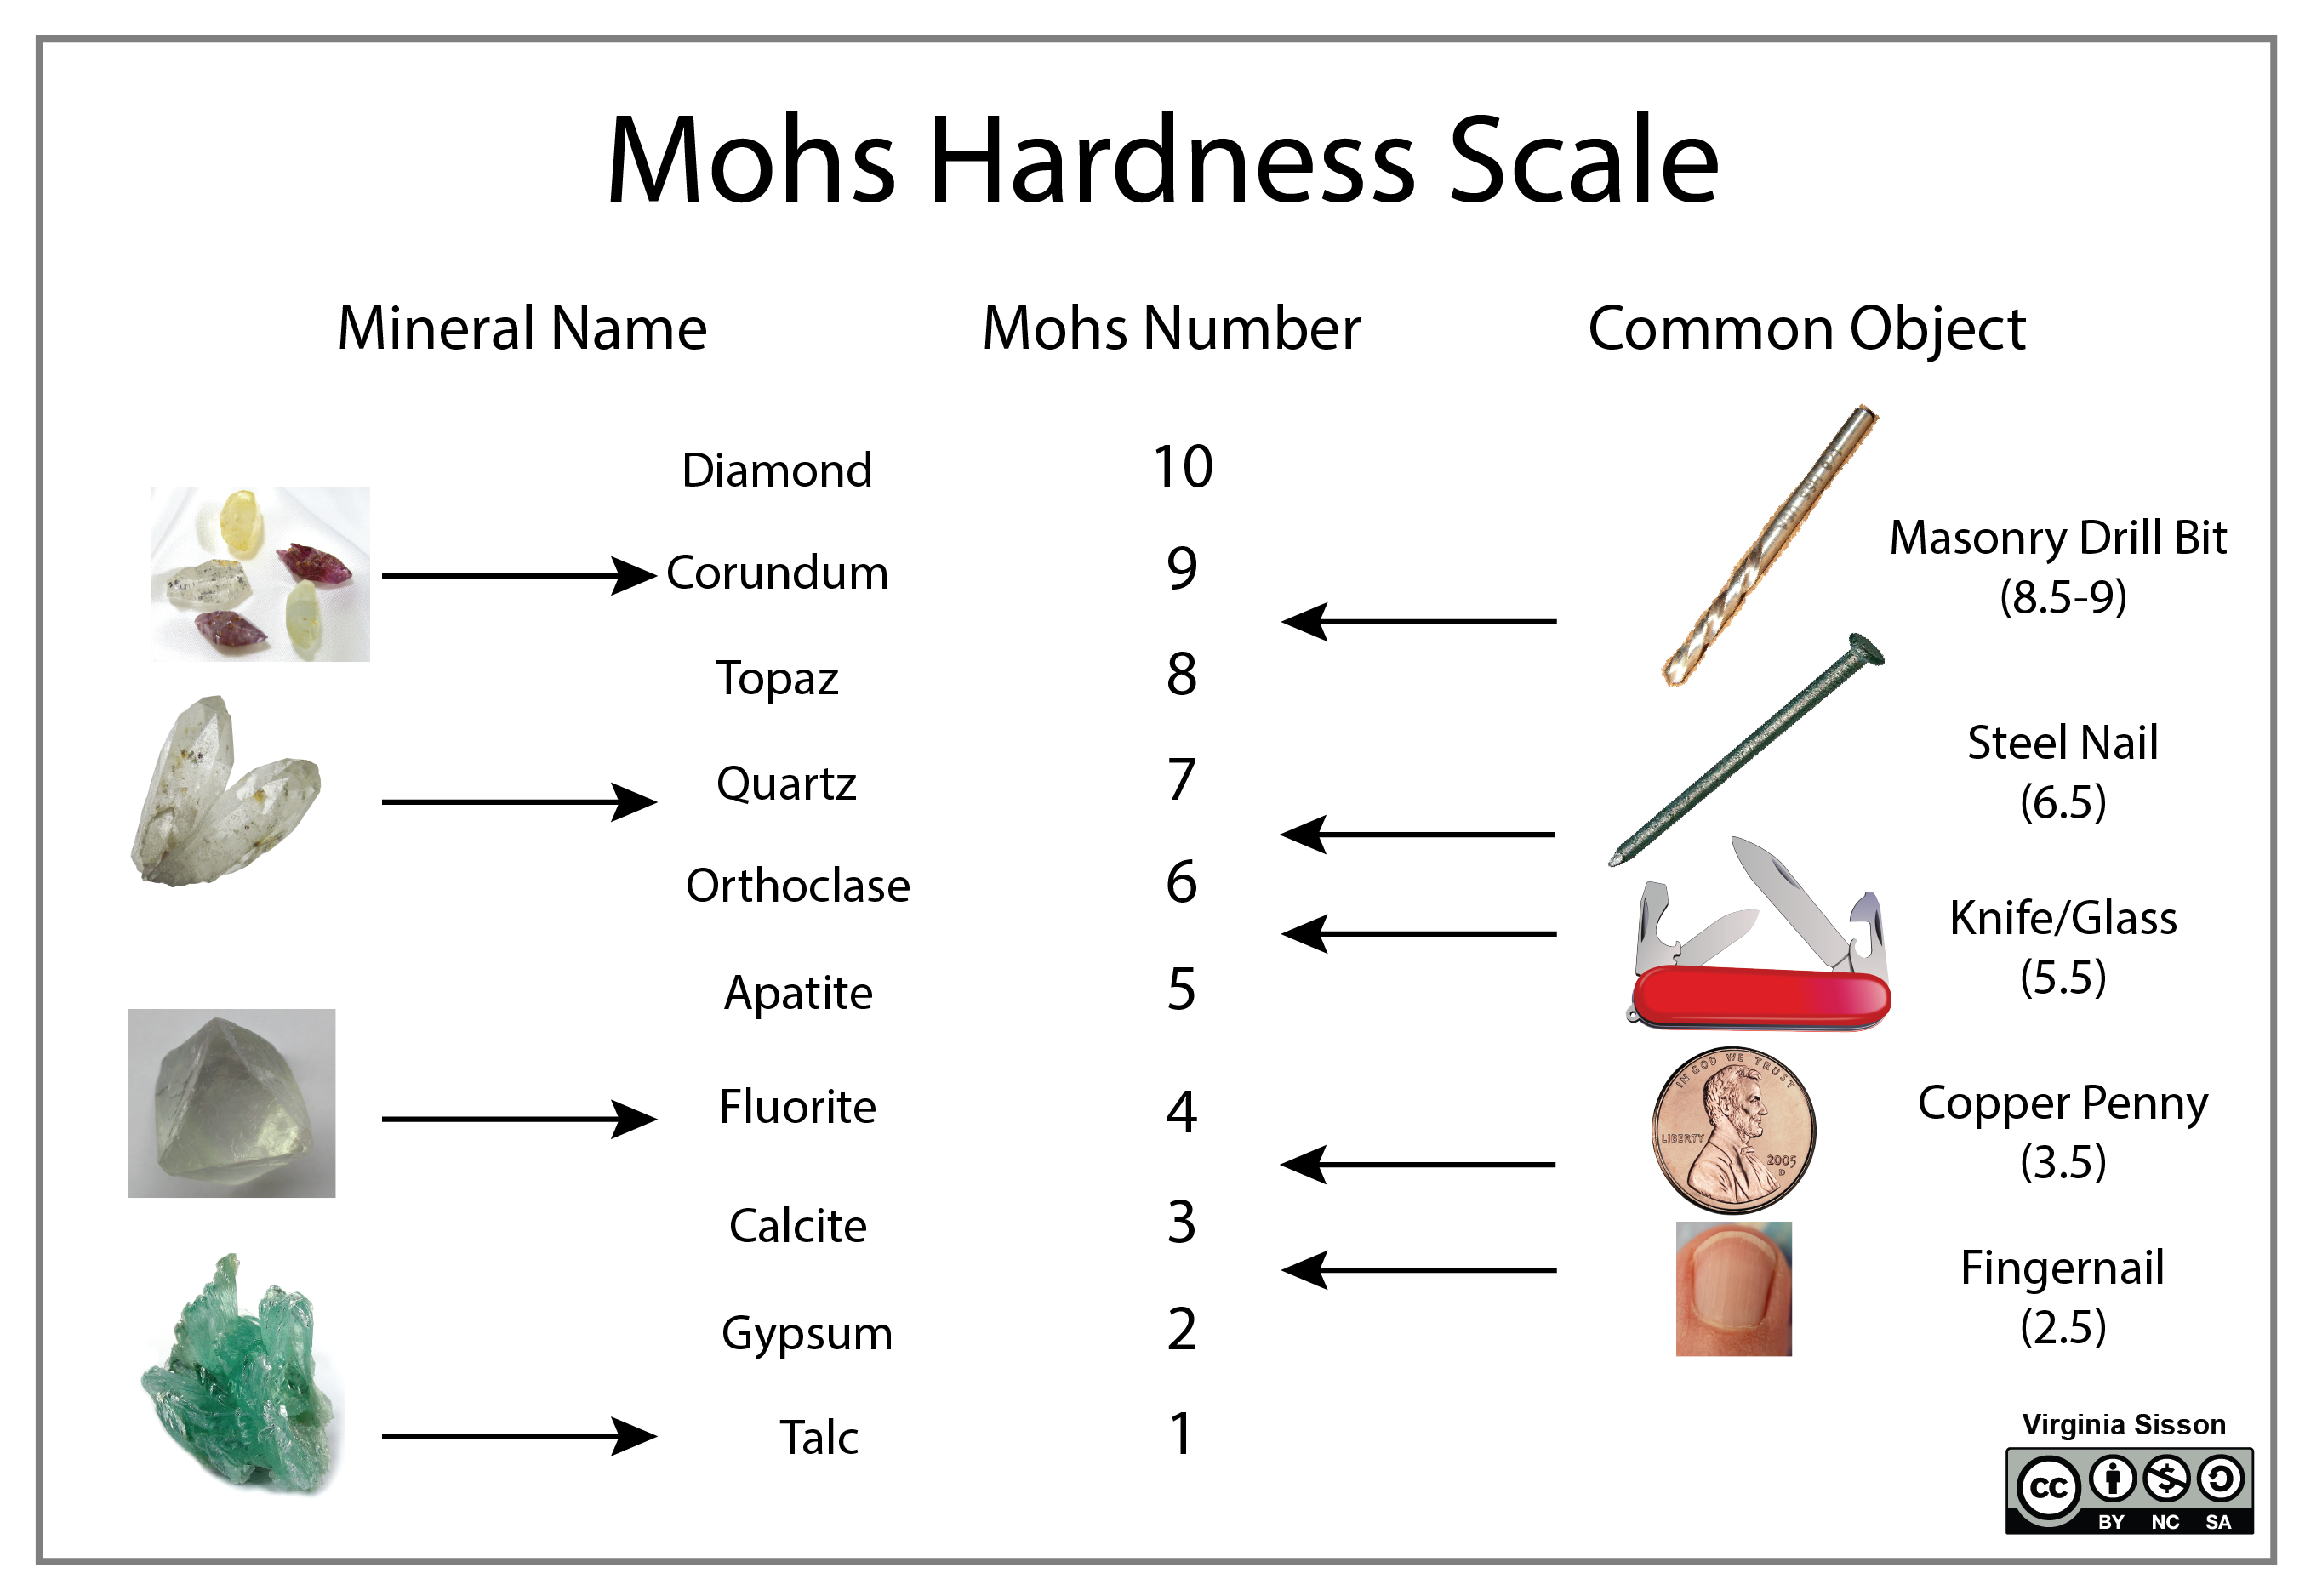 Mohs scale of relative hardness of minerals compared to common objects (finger nail, copper penny, glass, steel nail, and masonry bit).